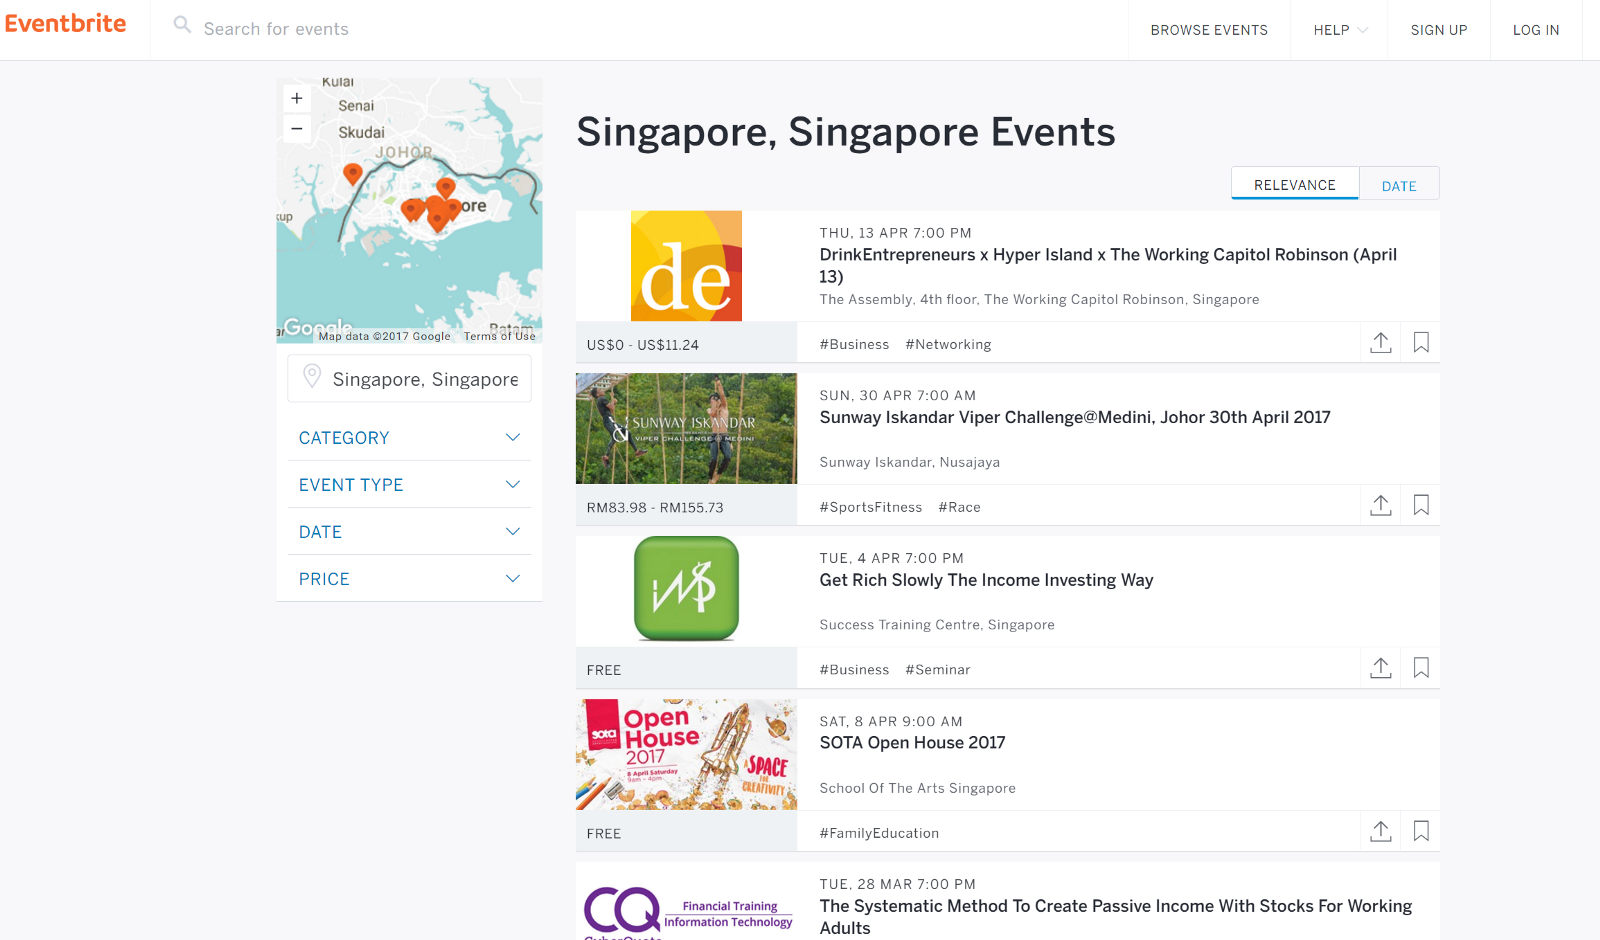 example of some of Eventbrite events from Eventbrite event directory